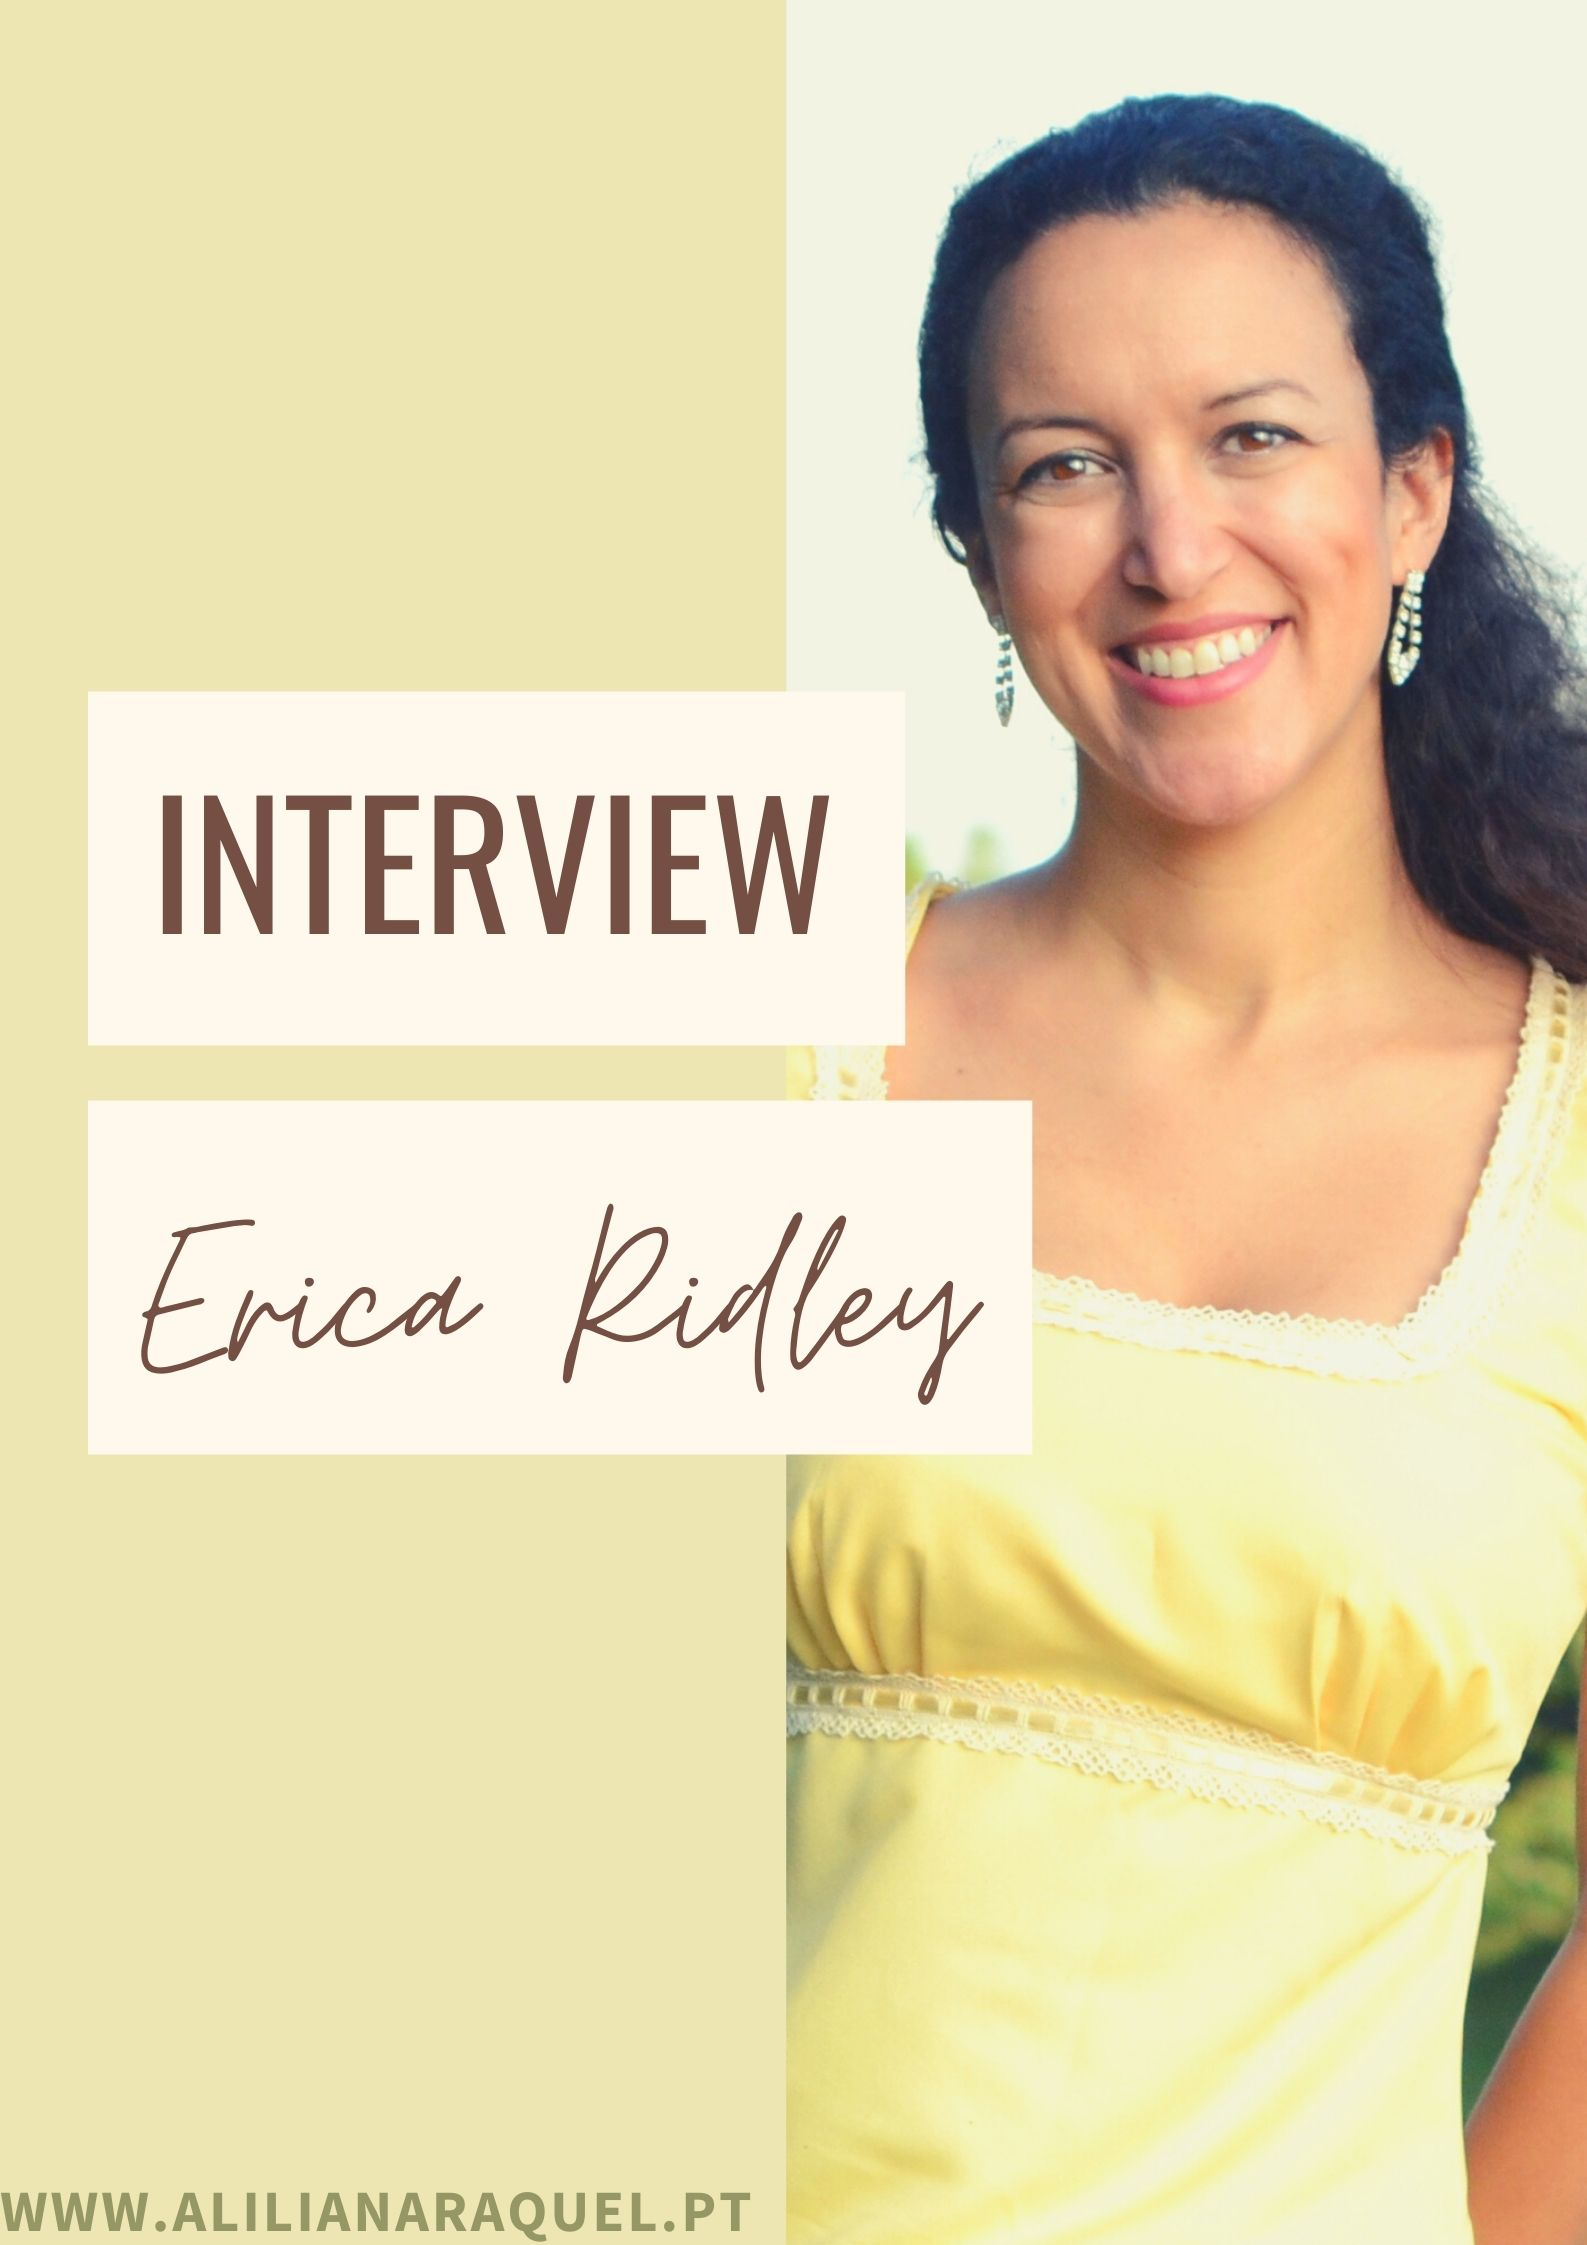 Interview with Erica Ridley